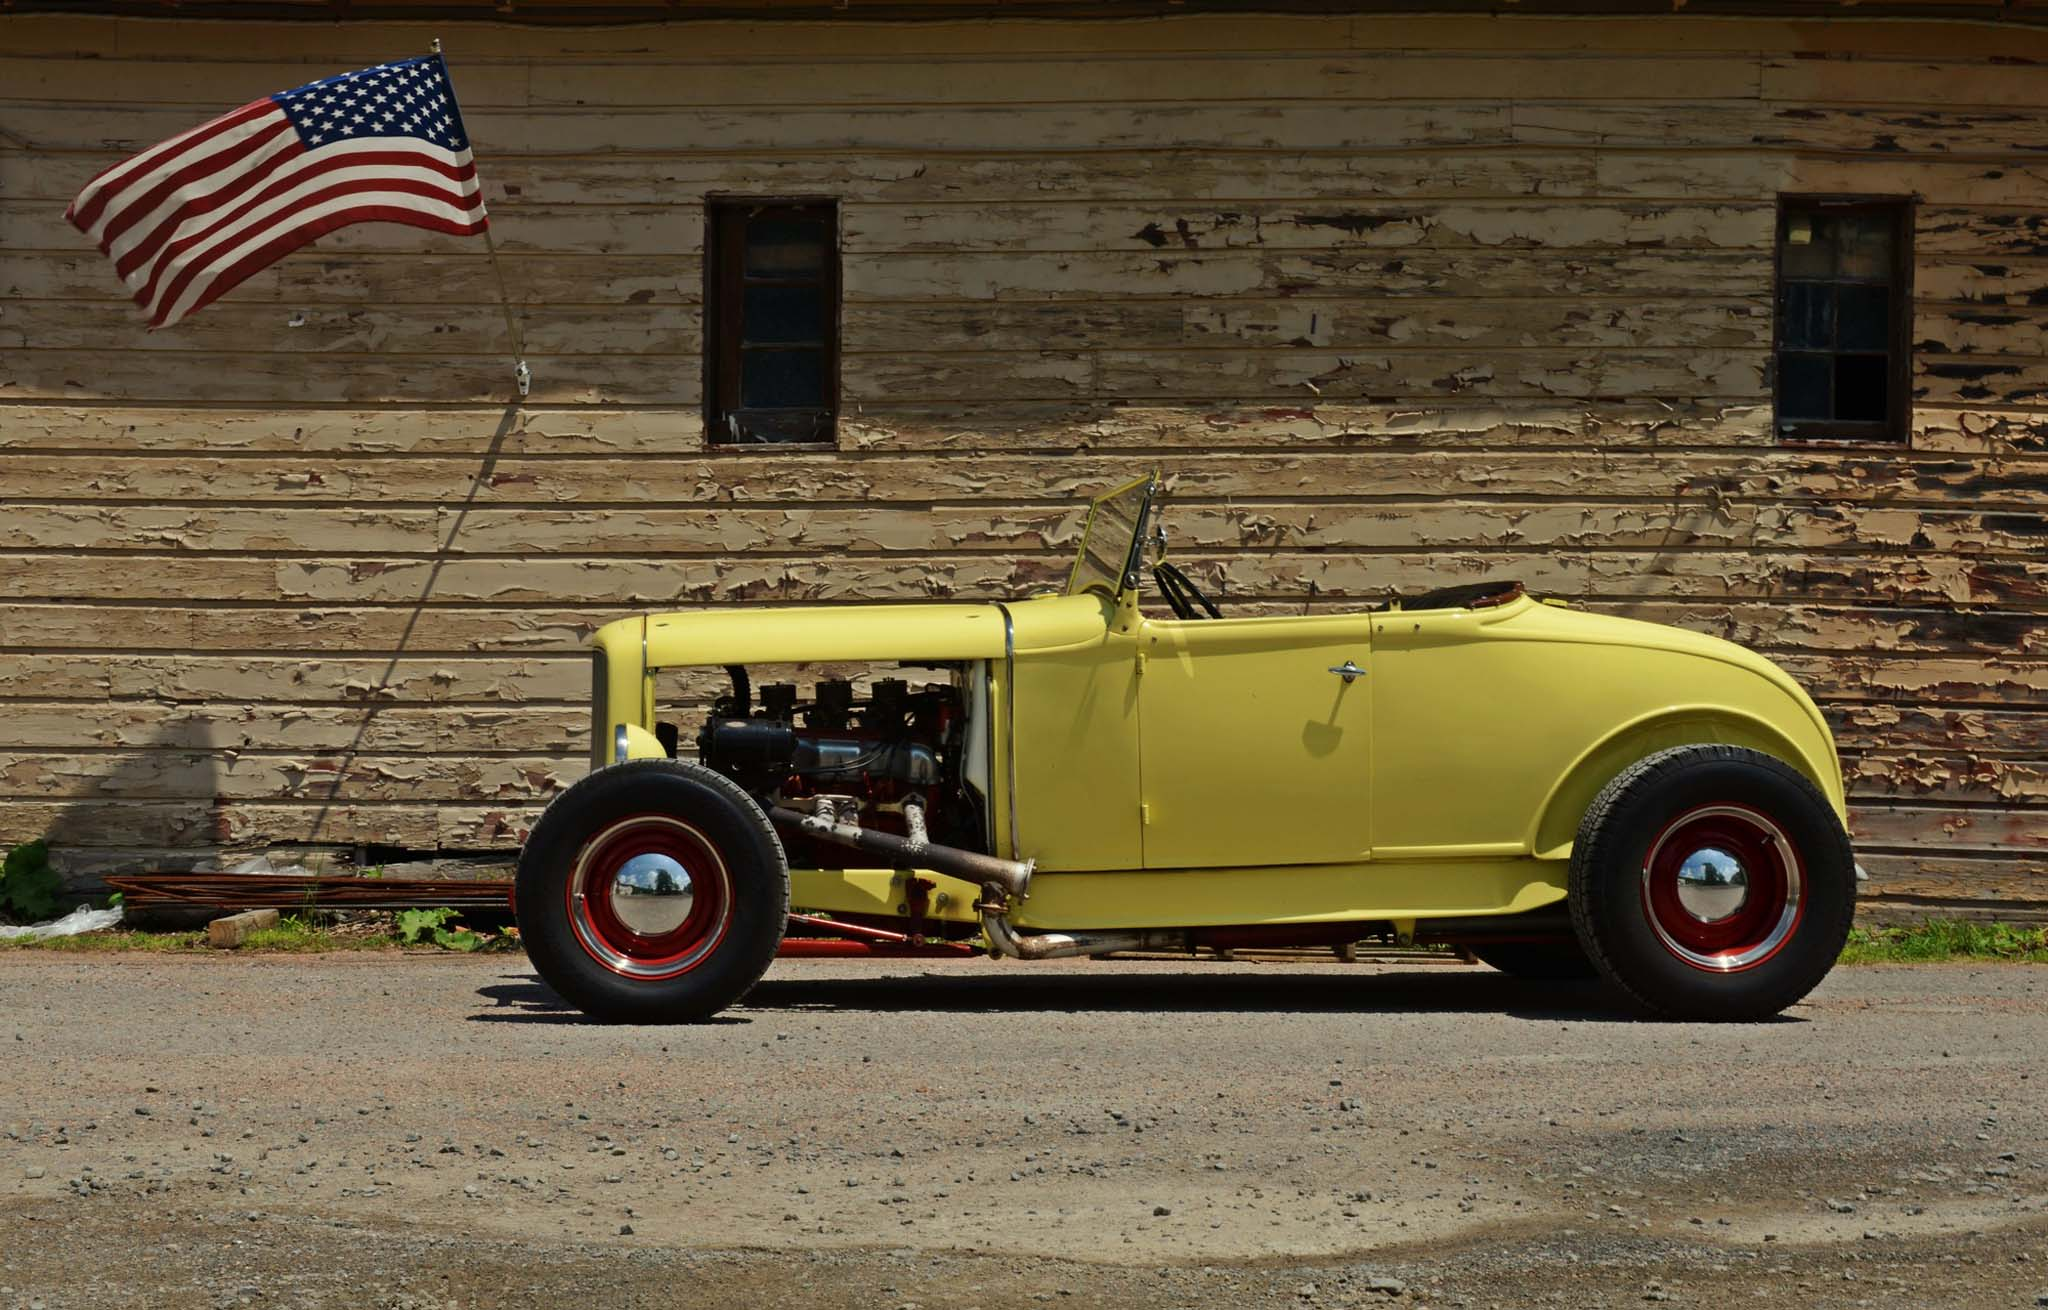 Dave built the 1930 out of a body he saved from a wrecking yard in Wyoming, and it's mounted on narrowed deuce rails. The hood is another one of Dave's custom touches—he hand-formed it from a Chevy S-10 piece.